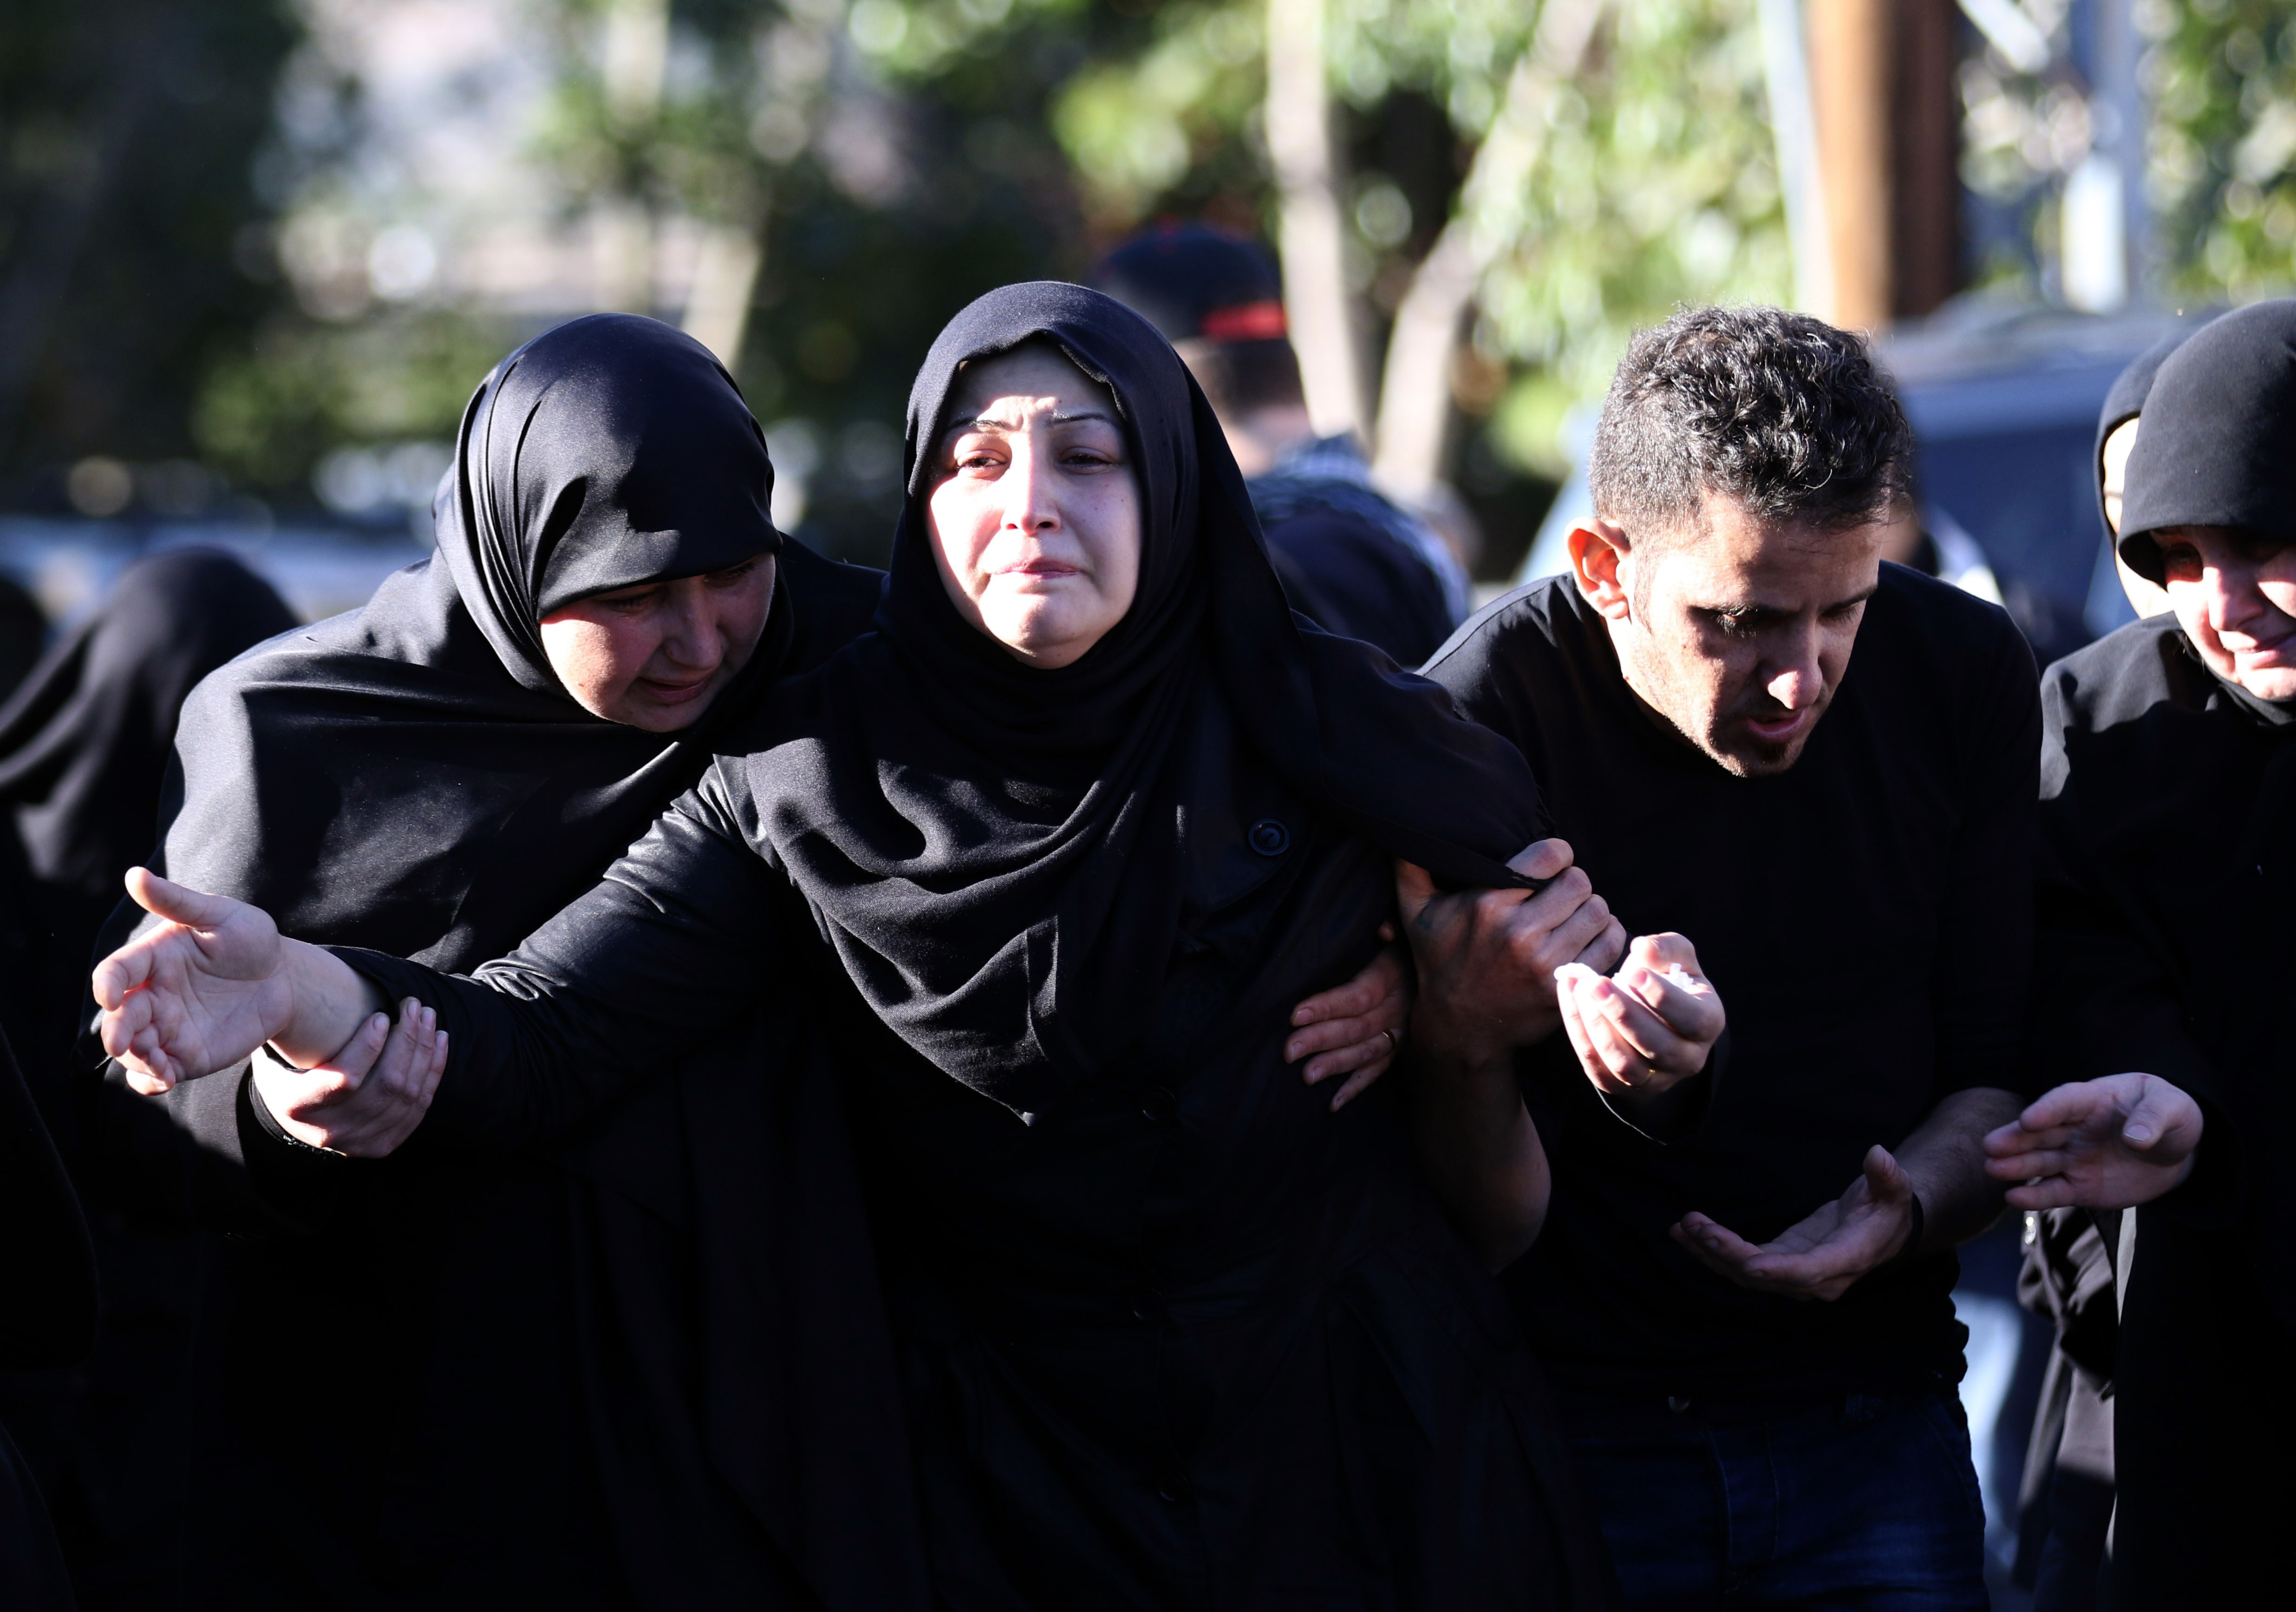 Not Just Paris: Why Is Beirut's Brutal Terrorist Attack Being Ignored?